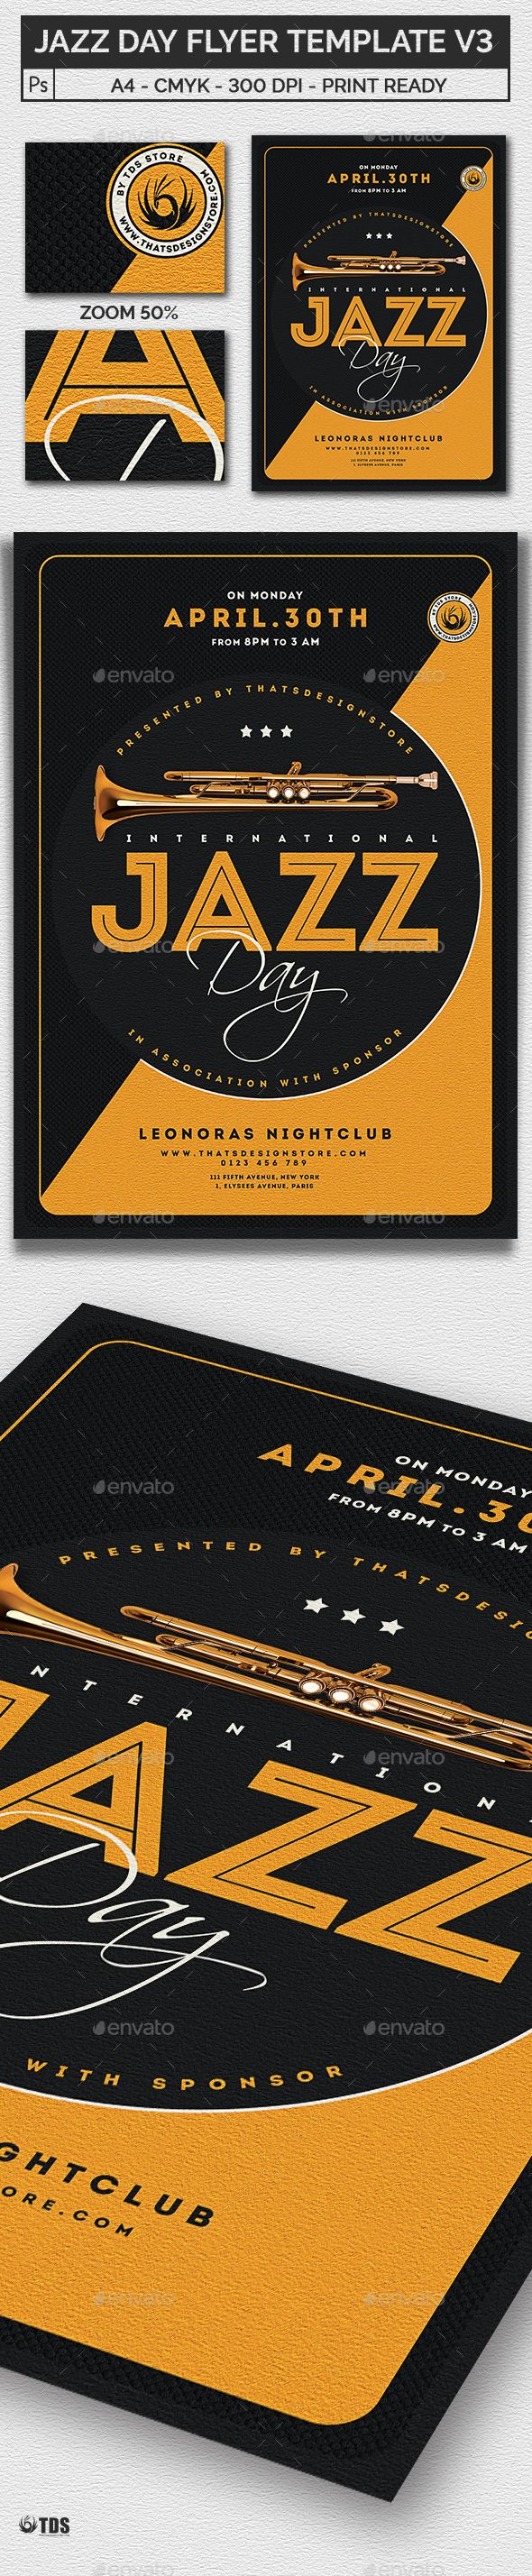 #Jazz Day #Flyer Template V3 - Concerts Events